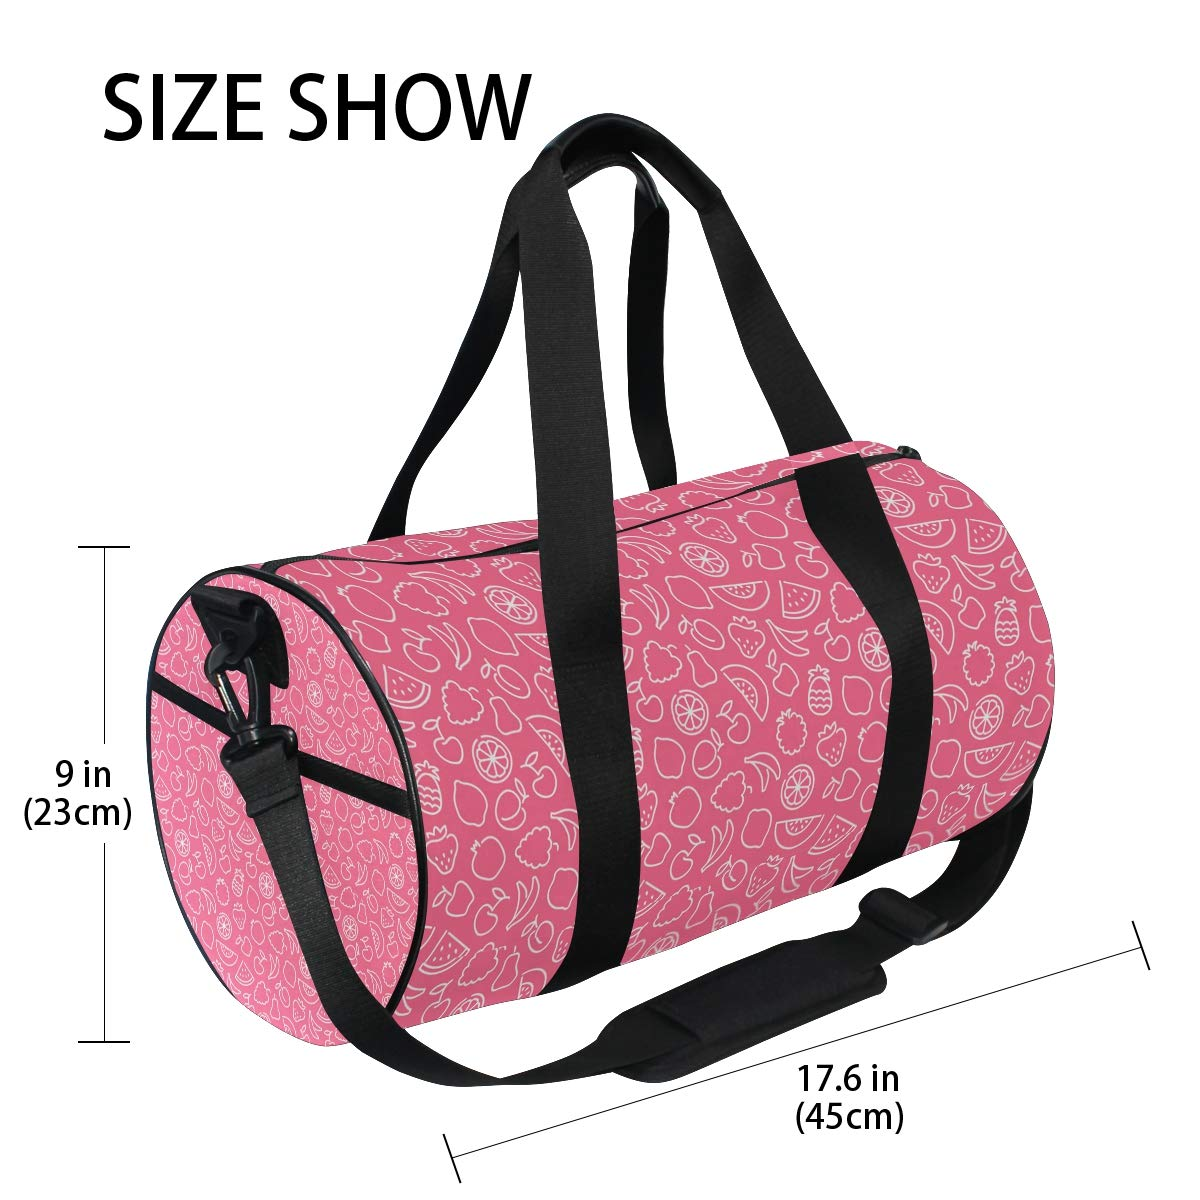 Waterproof Non-Slip Wearable Crossbody Bag fitness bag Shoulder Bag Sea Vegetable Flakes Picture